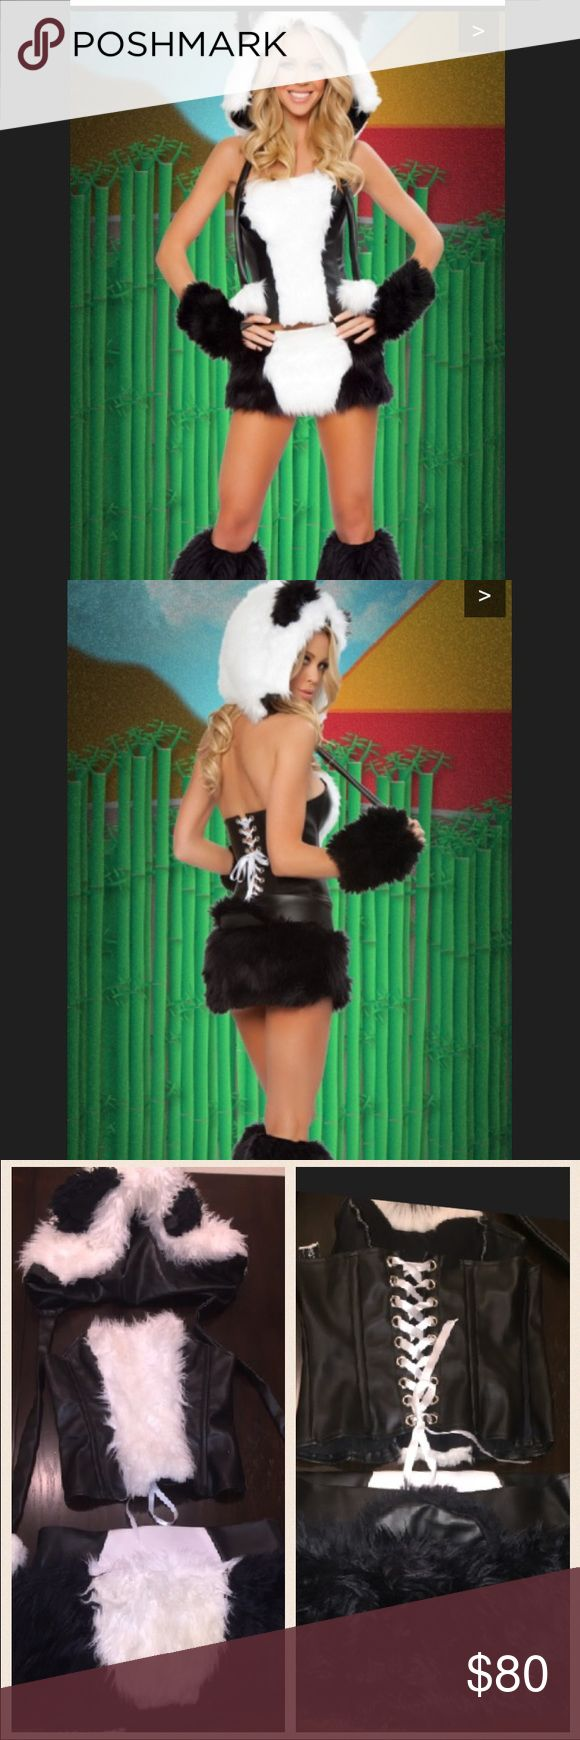 🎃Halloween costume🎃 Panda costume. Includes fur hat, corset top. Matching skirt with panda tail and both arm and leg warmers. Super cute purchased off Yandy I think. Good condition Other